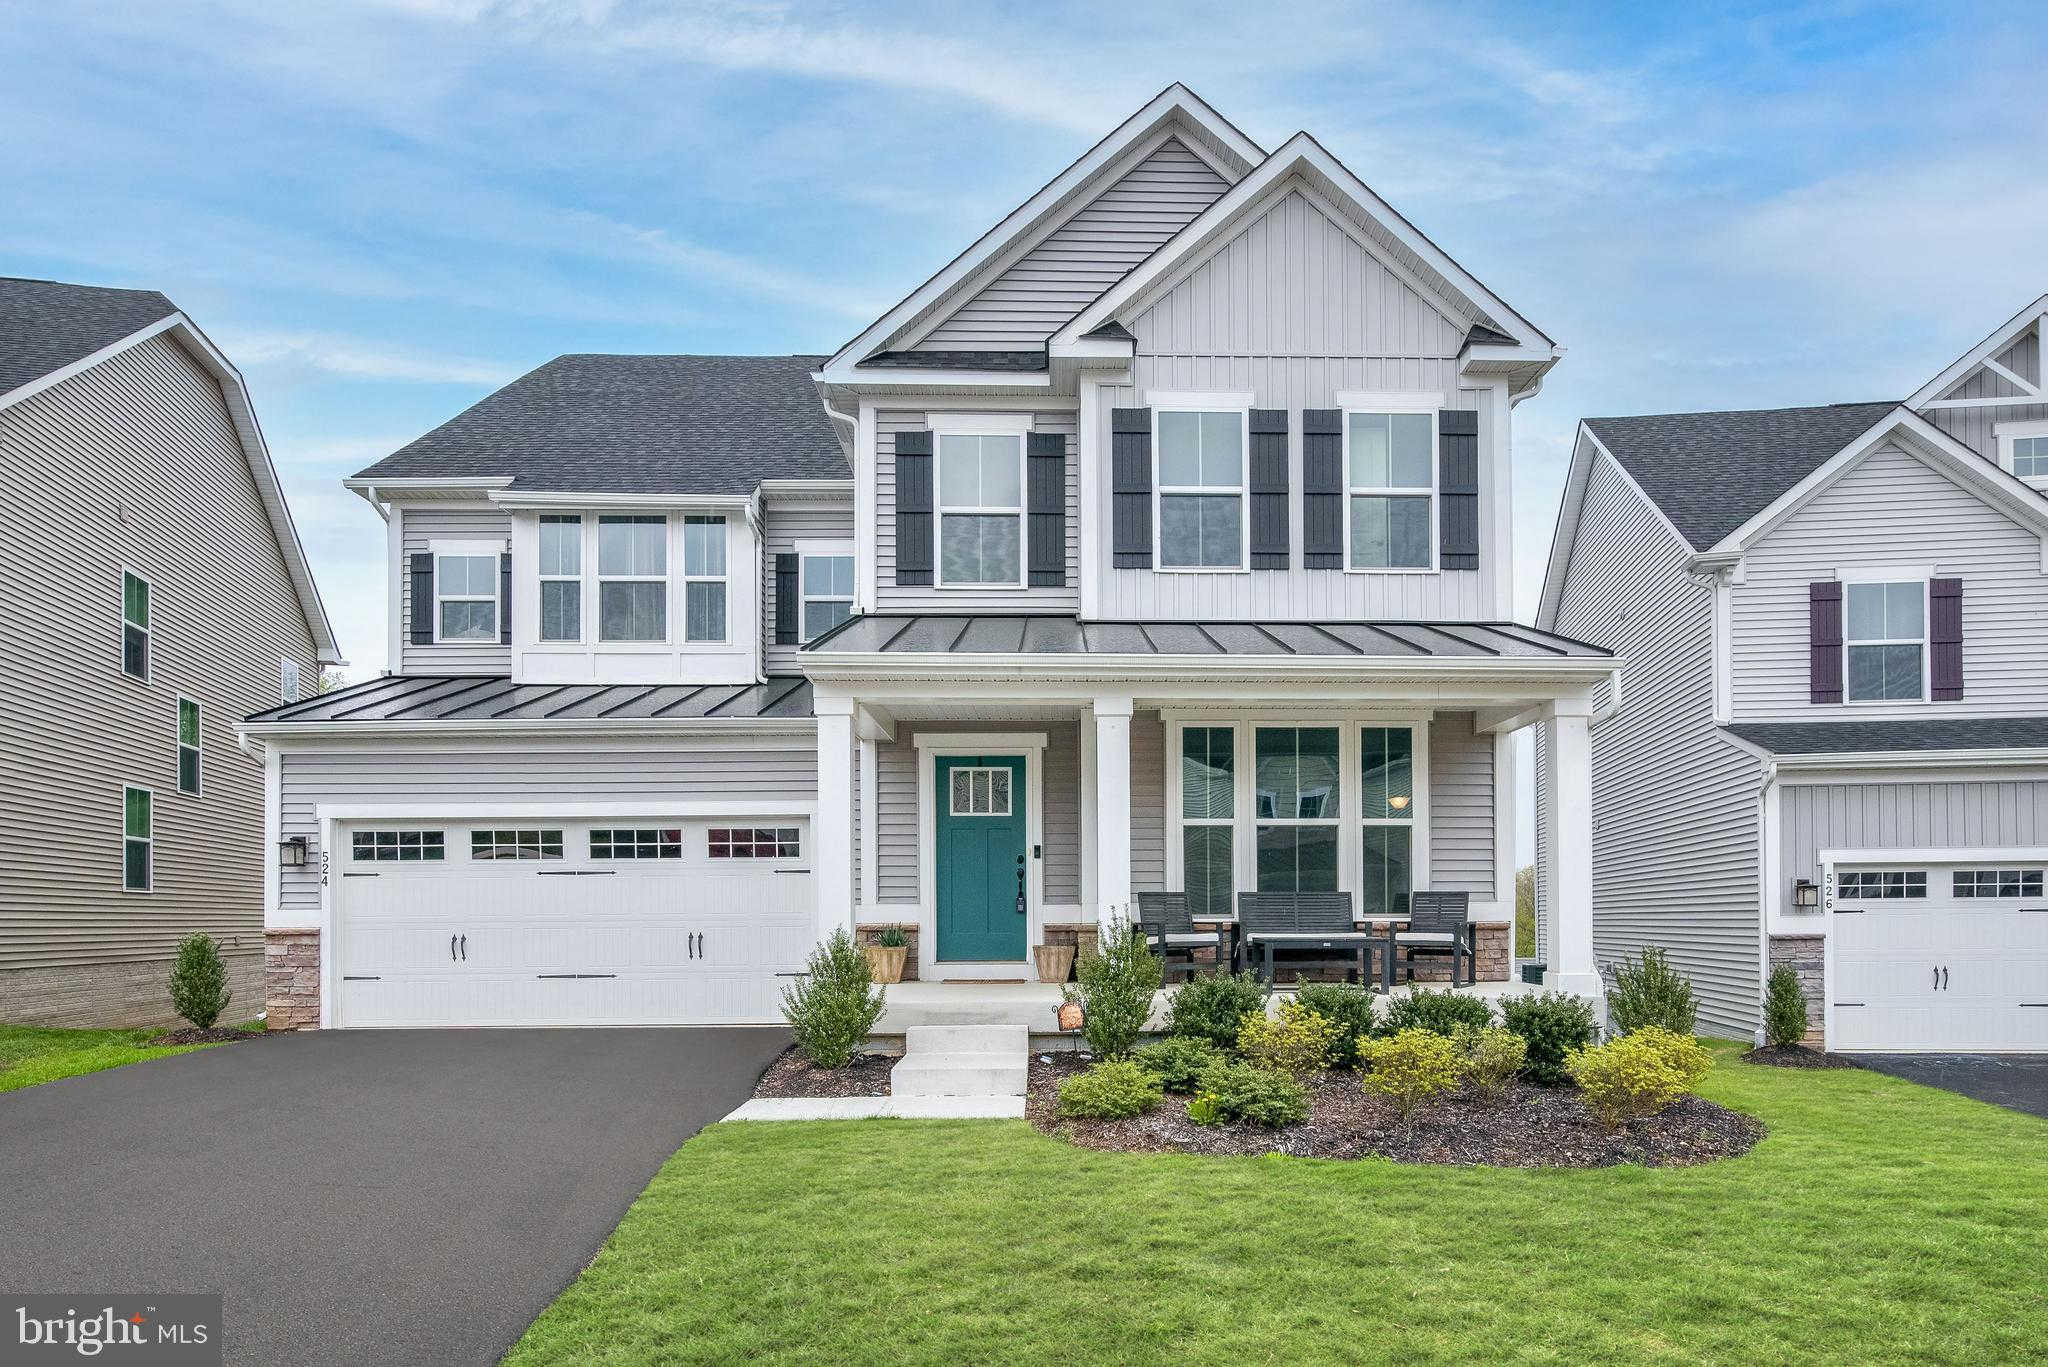 524 Dusk View Drive, Havre DE Grace, MD 21078 now has a new price of $590,000!